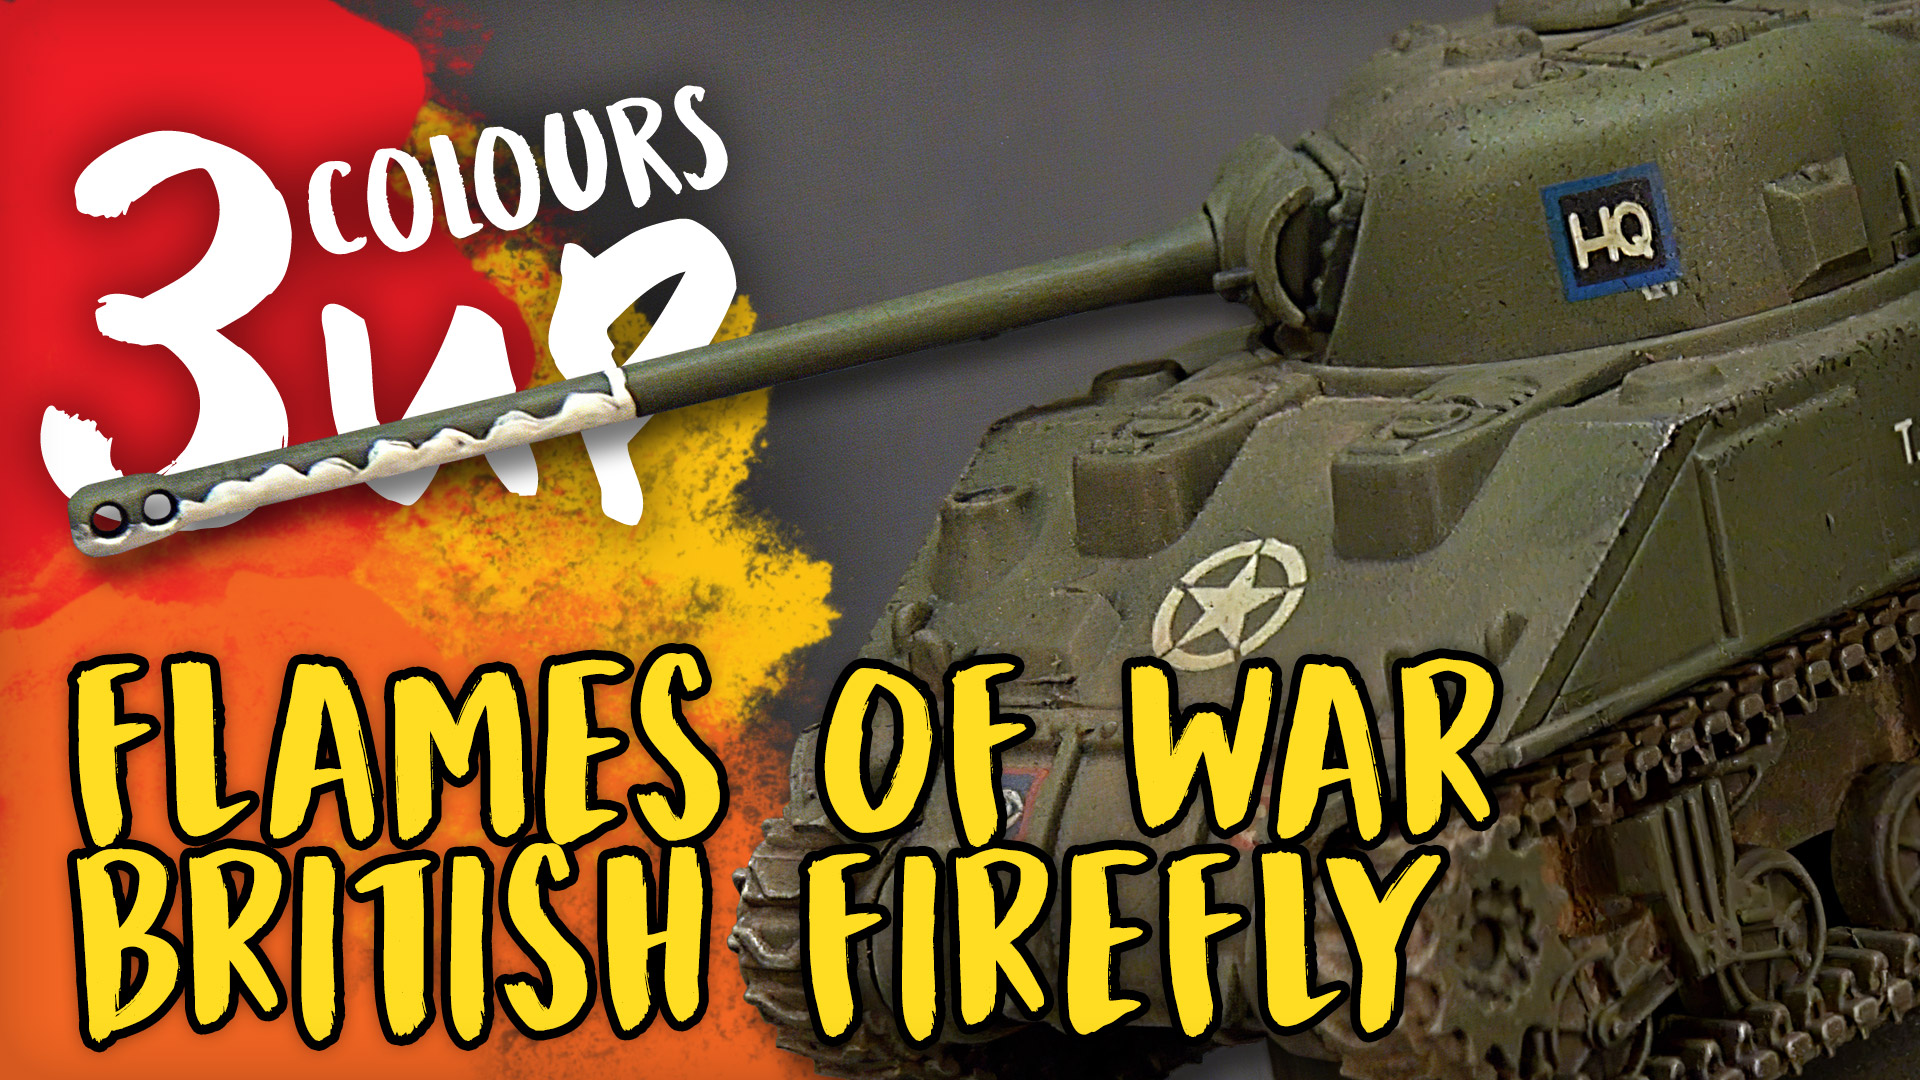 Flames-of-War-Firefly-coverimage